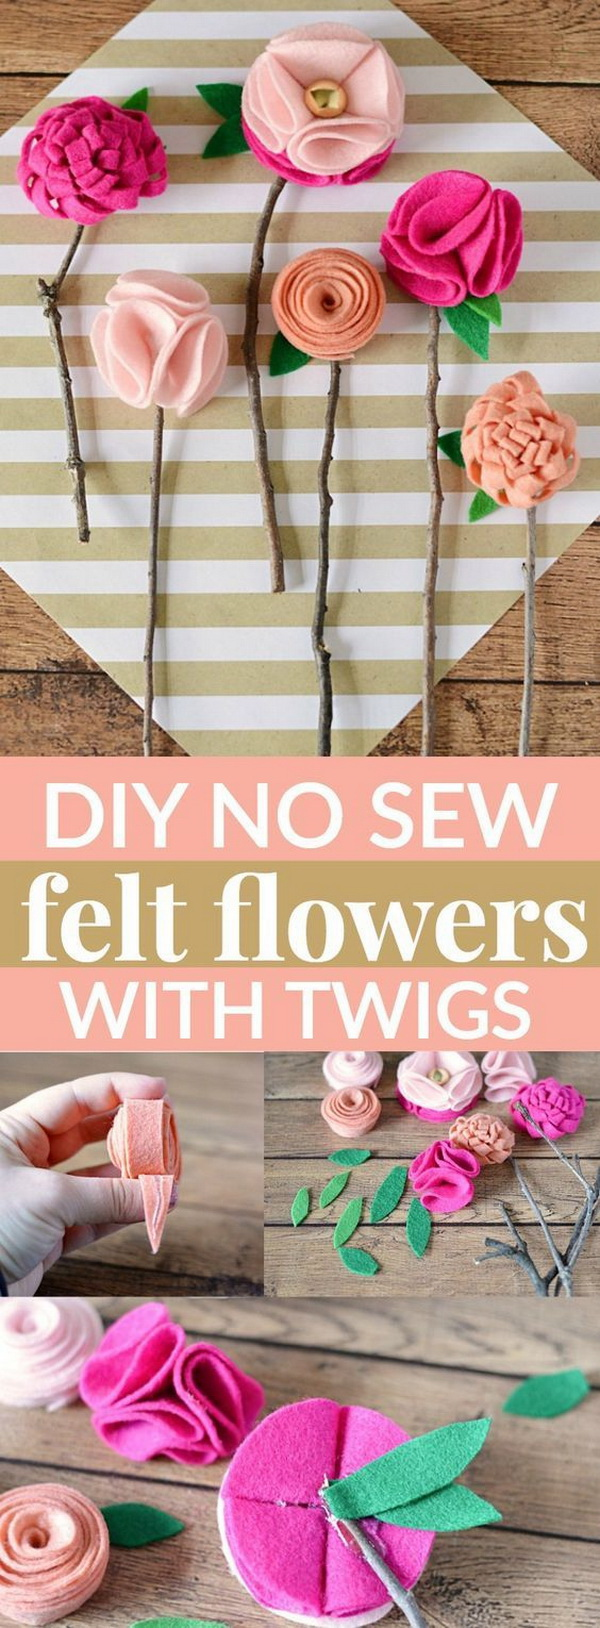 Mother's Day Crafts and gifts: DIY No Sew Felt Flowers With Twigs.